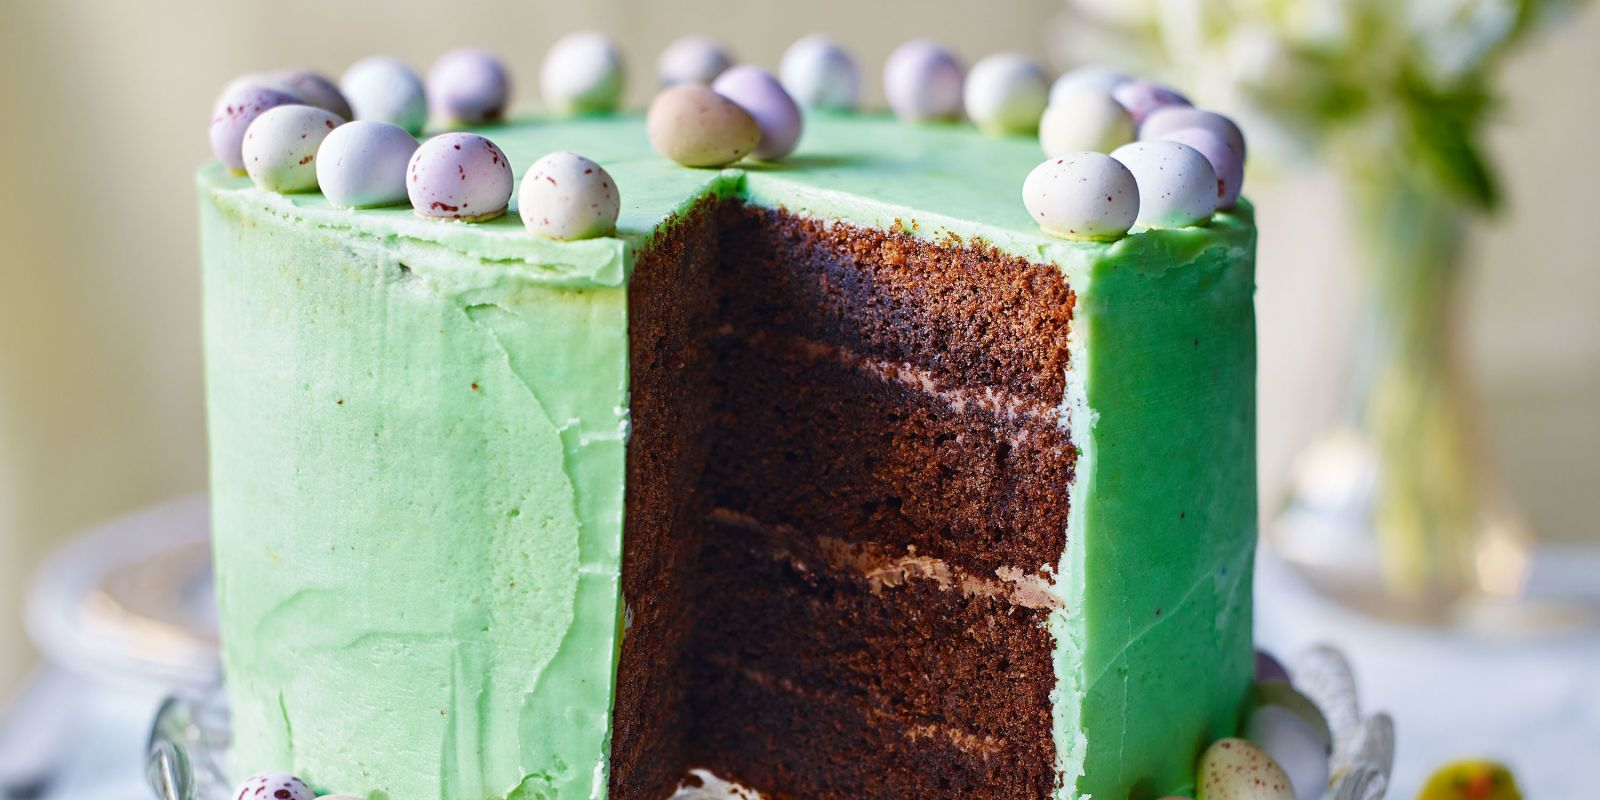 Easter baking doesn't get more spectacular than this colourful cake. The best bit? It's really straight forward to make.